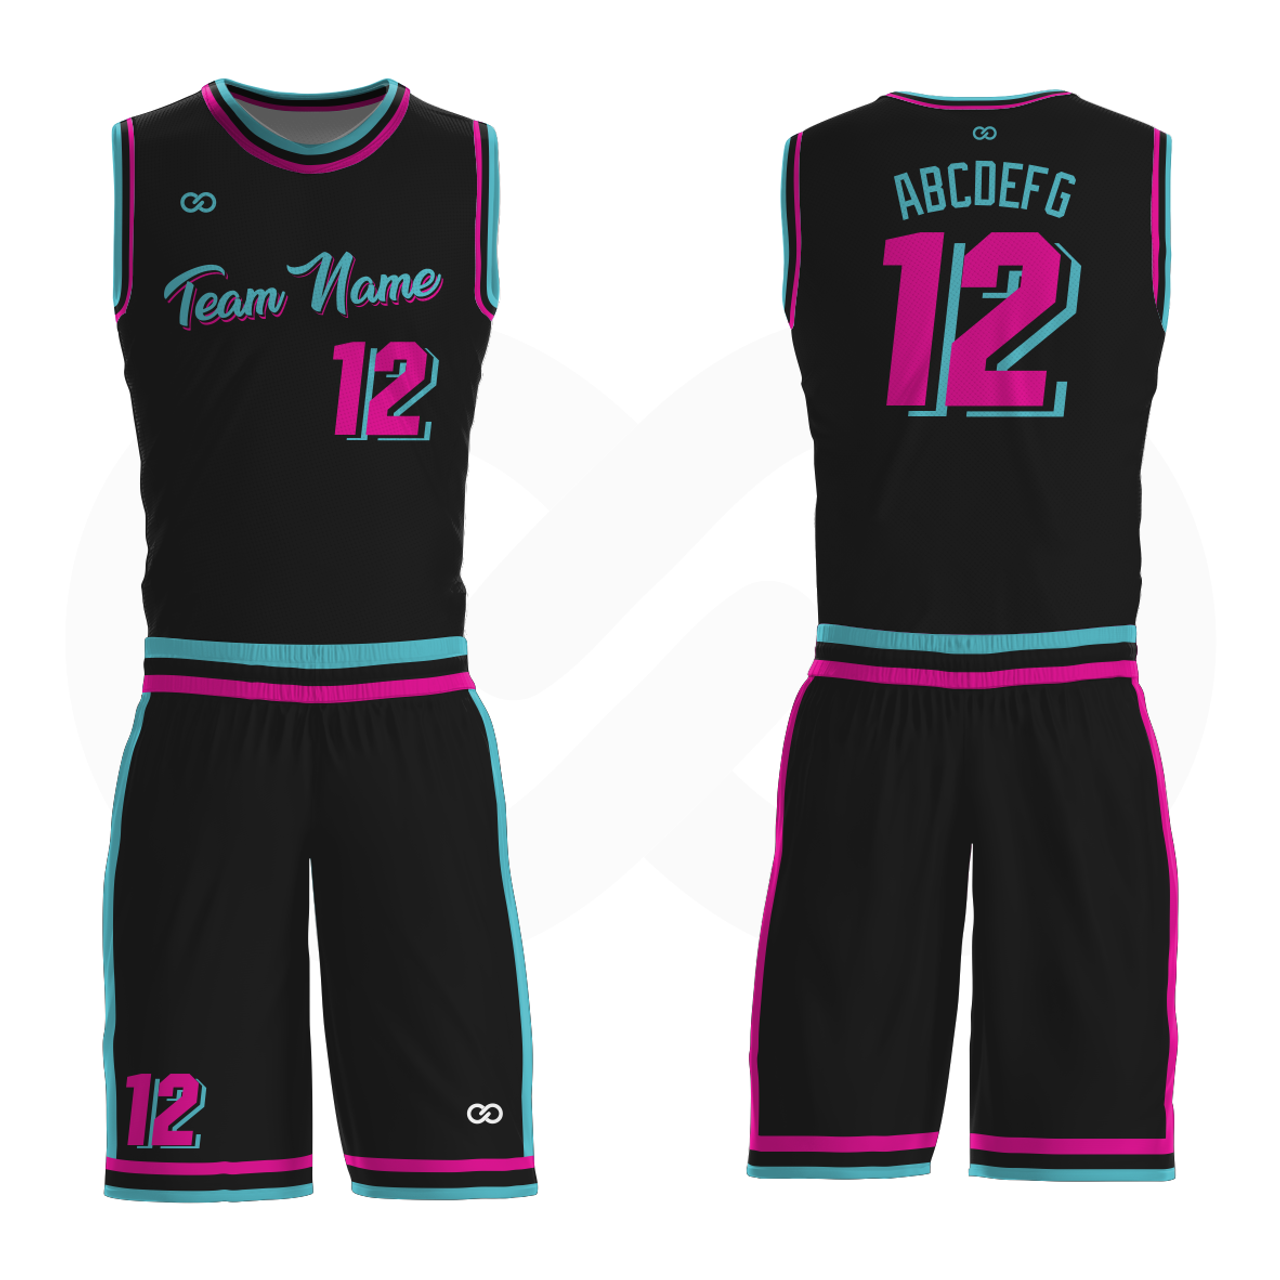 outlet store 83a57 38df3 Miami Vice - Custom Basketball Uniform Full Set